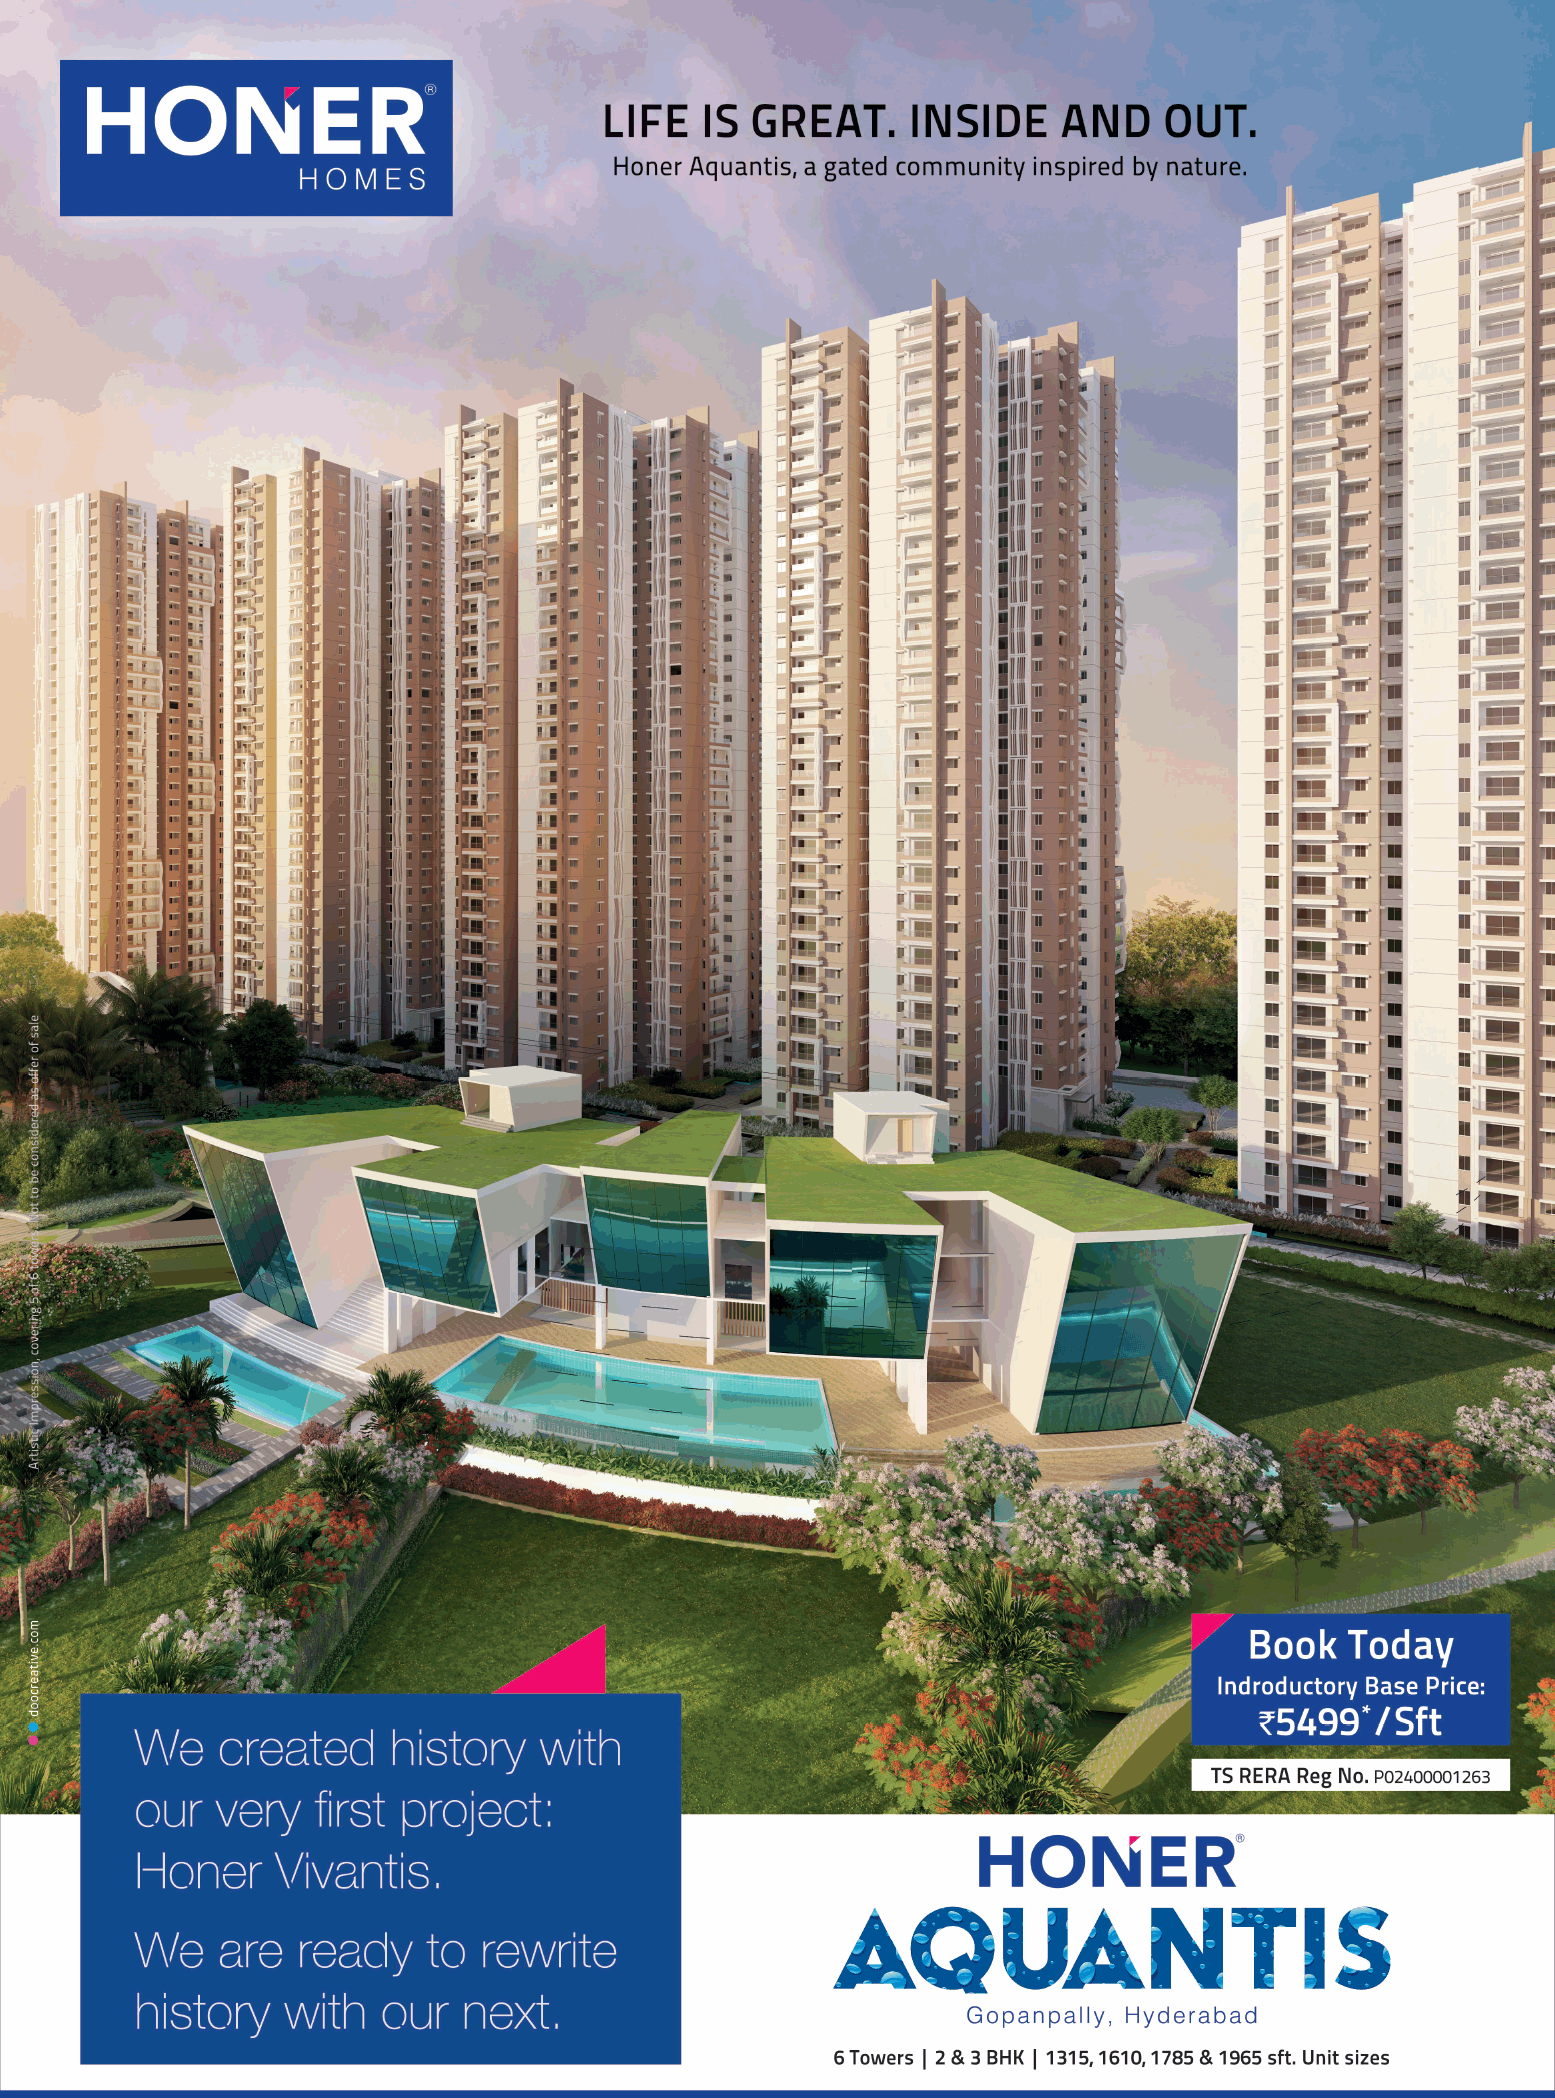 Book today indroductory base price Rs 5499 per sq ft at Honer Aquantis Hyderabad